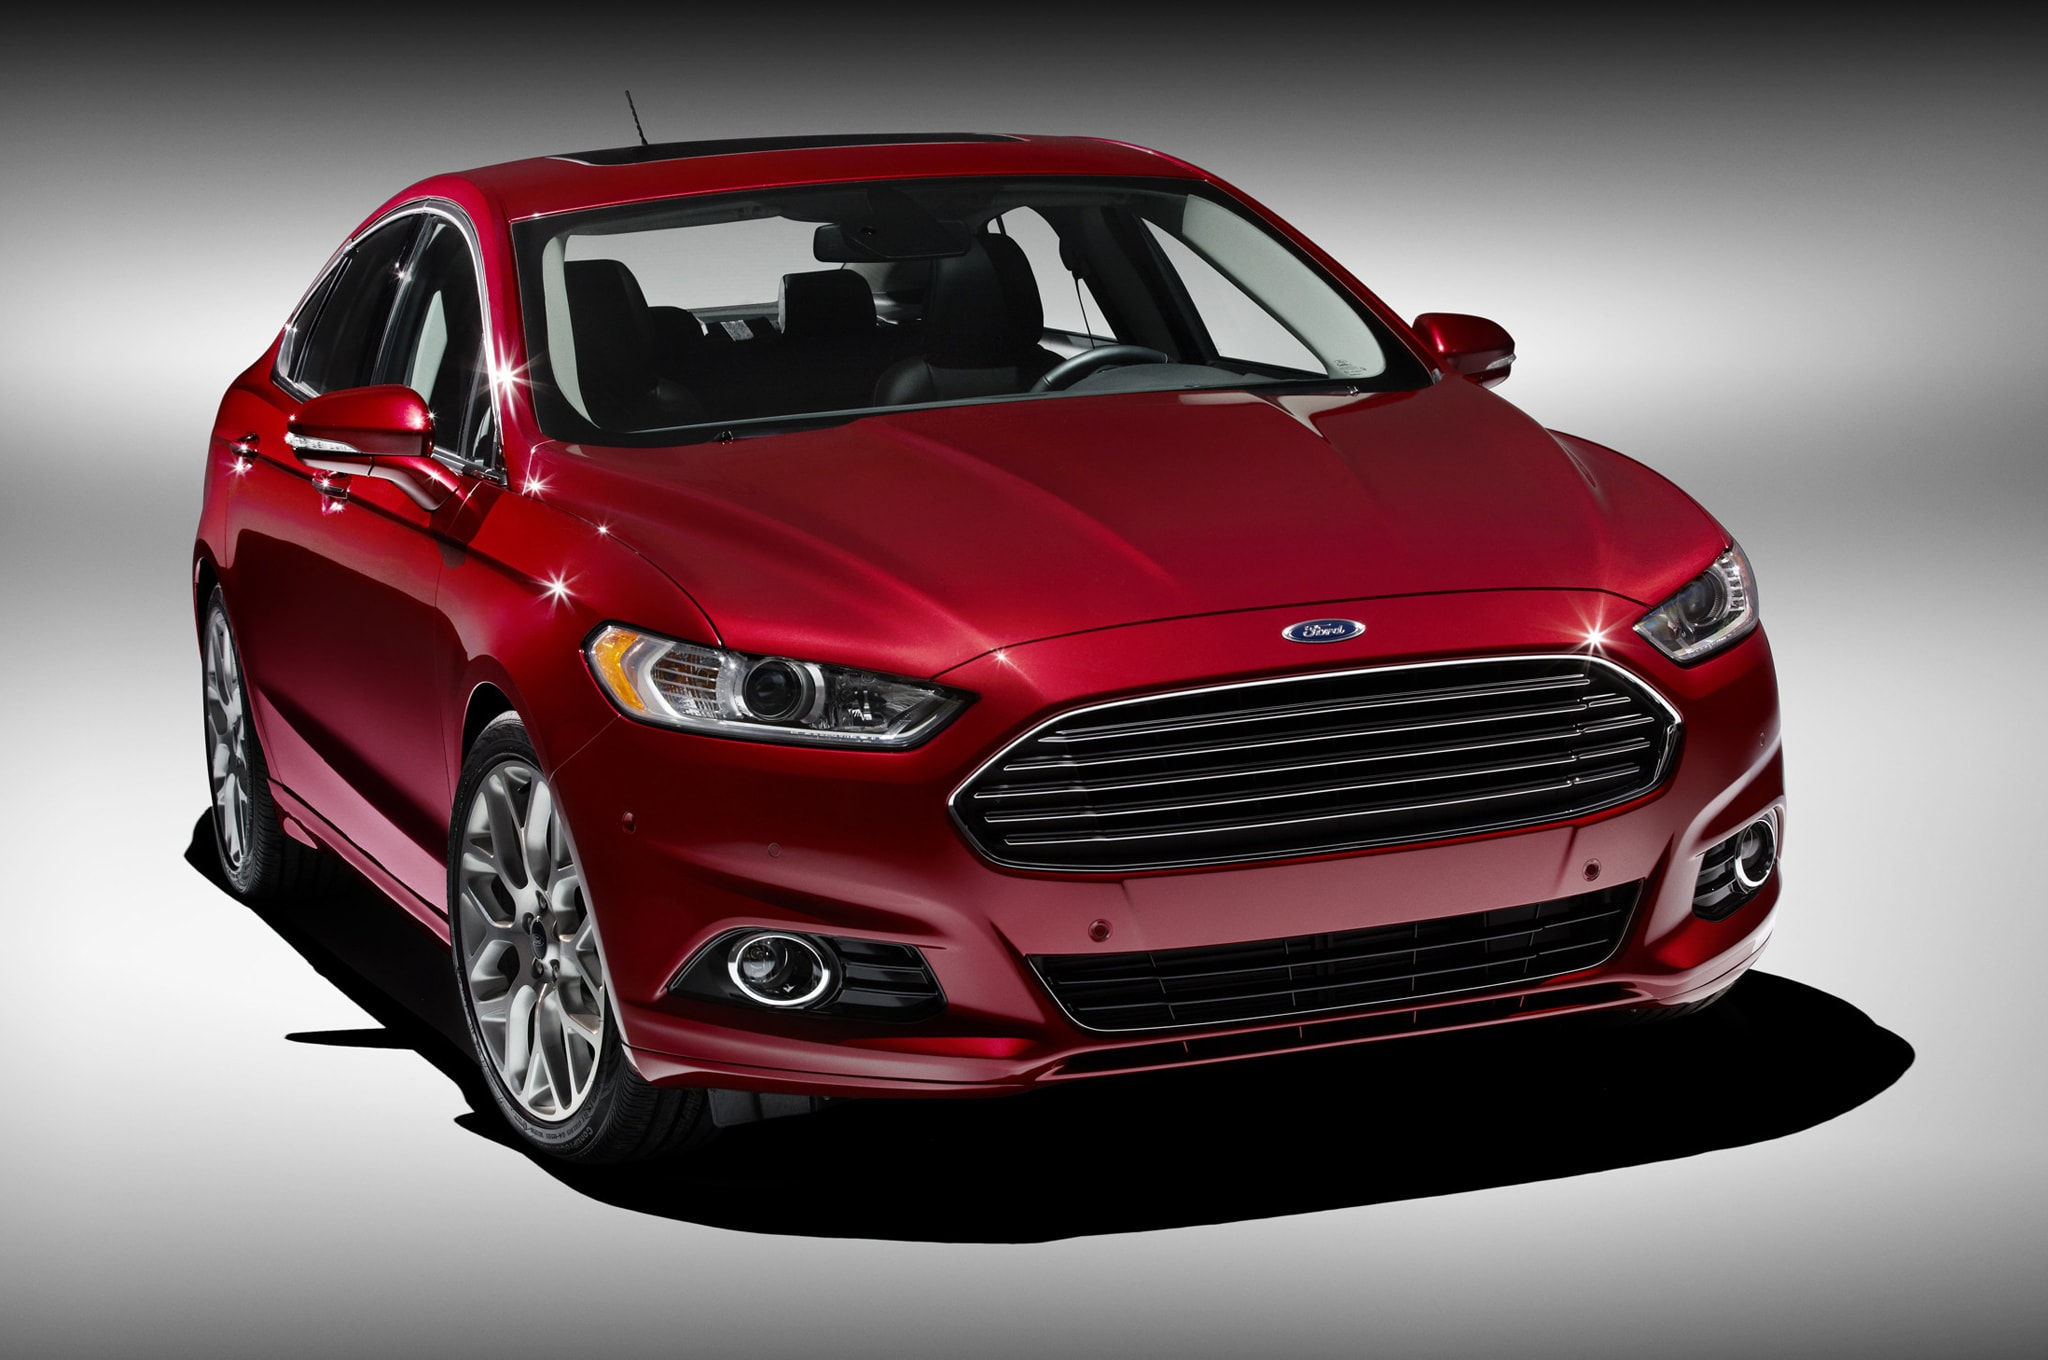 2013 Ford Fusion Widescreen